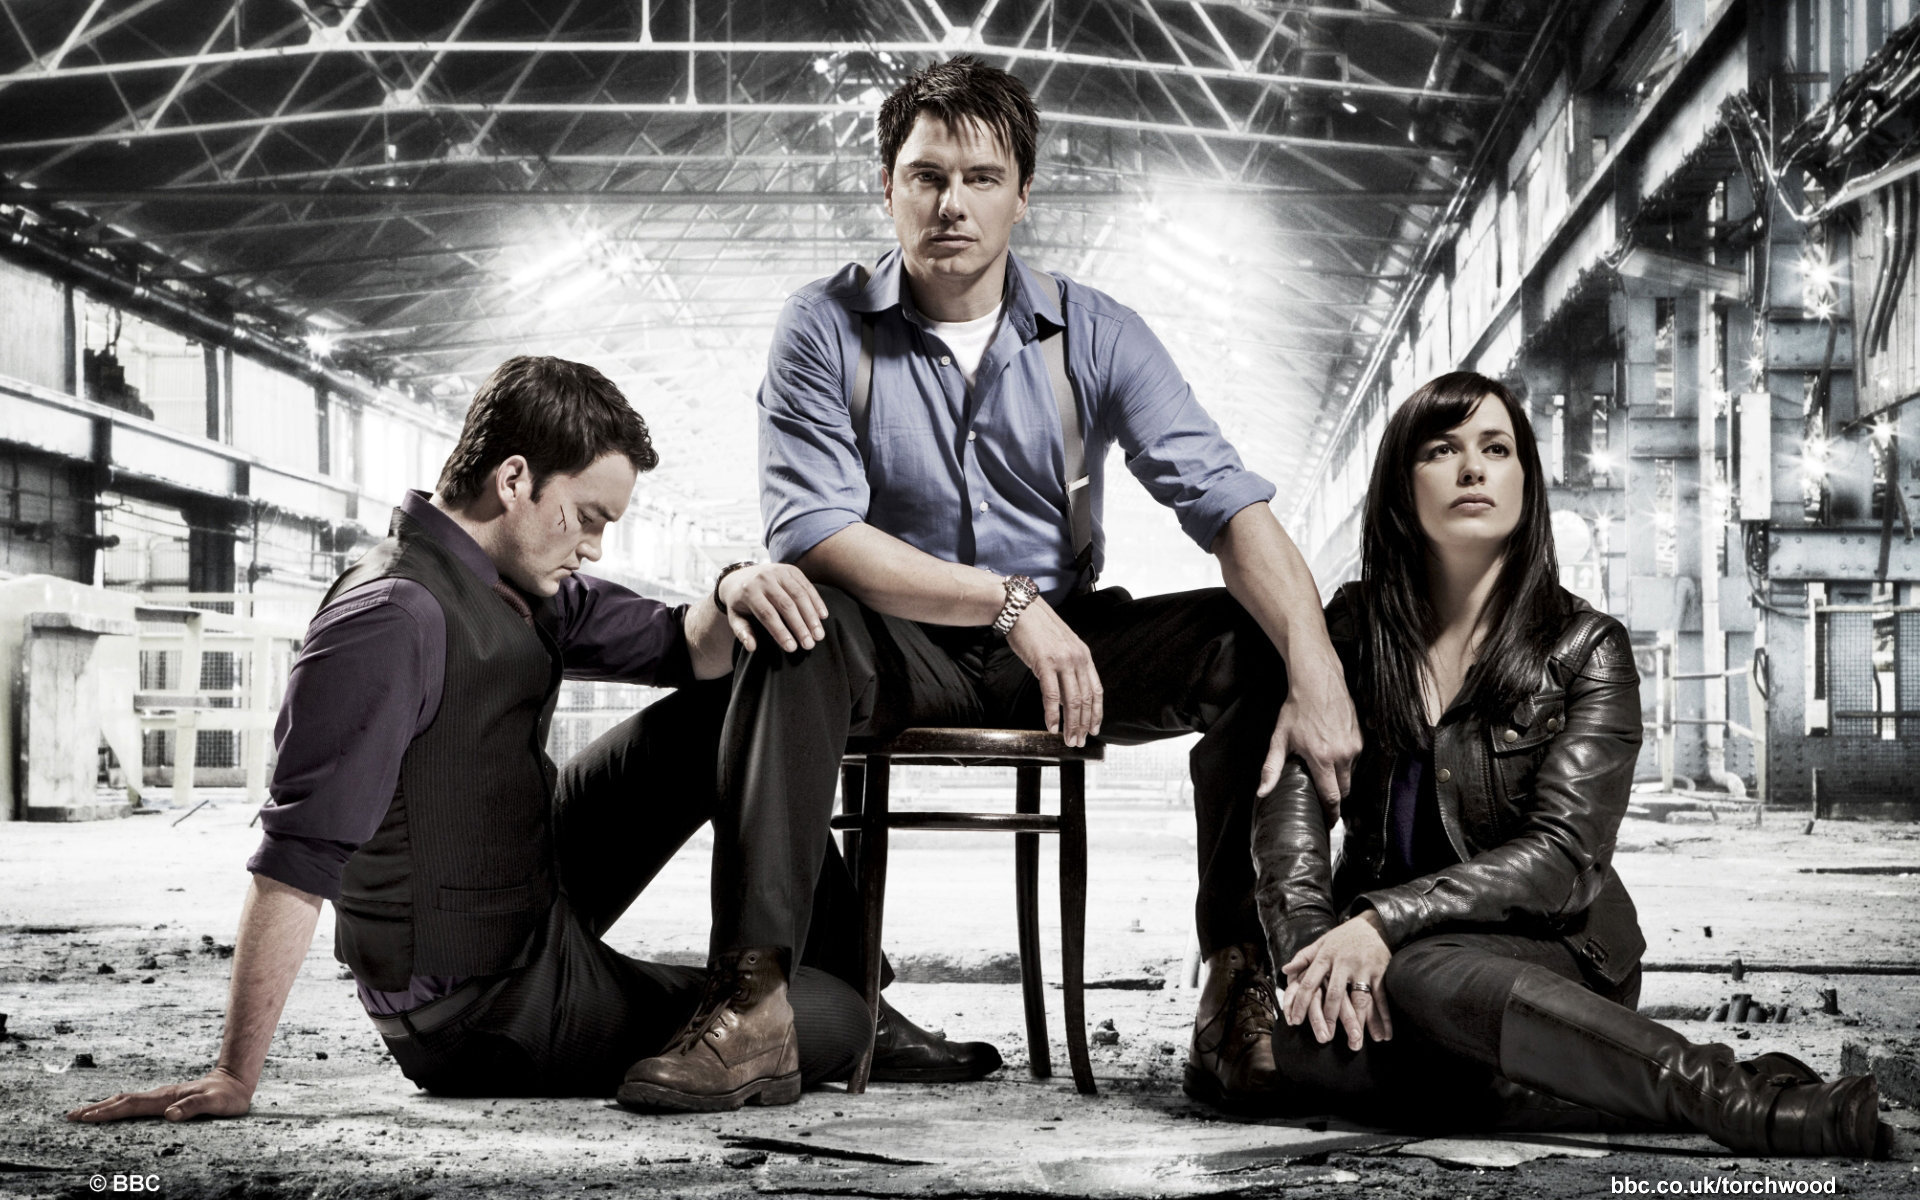 Kids Torchwood children of HD Wallpaper